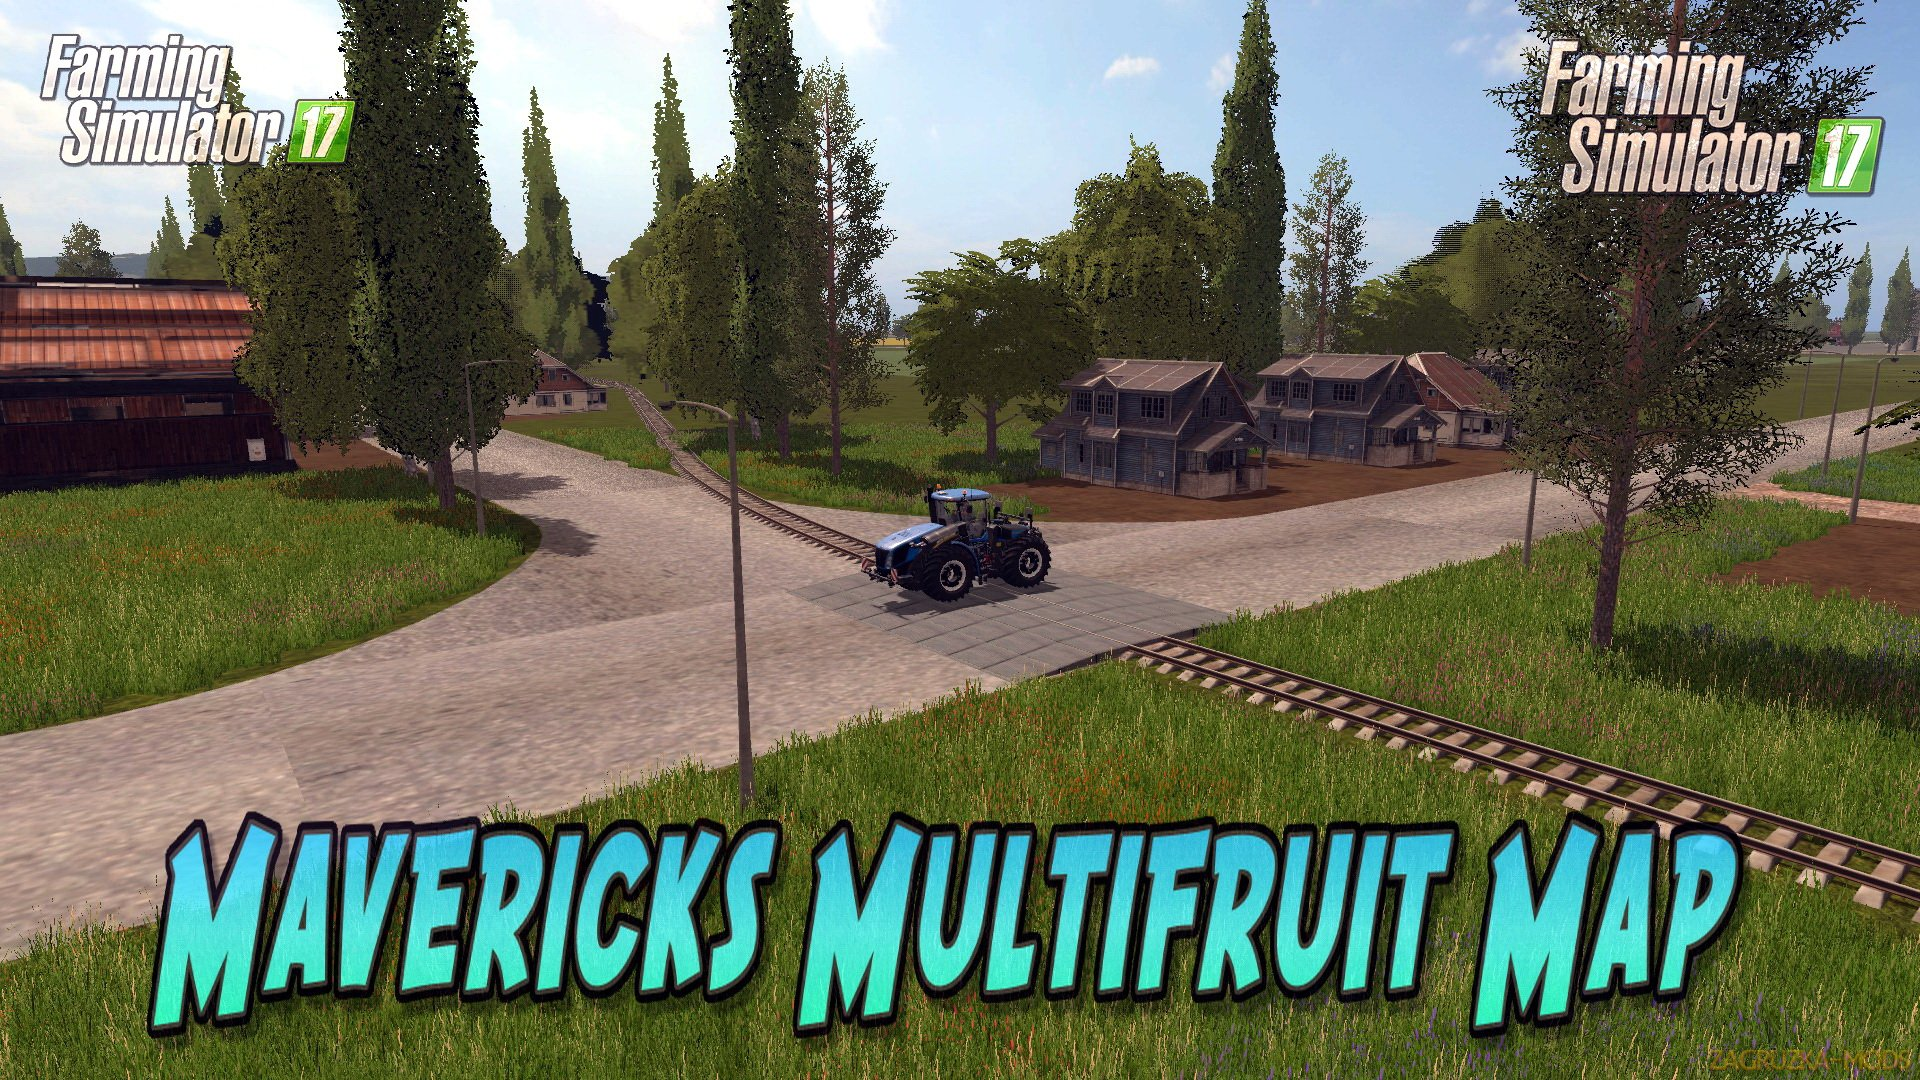 Mavericks Multifruit Map v2.0 for FS 17